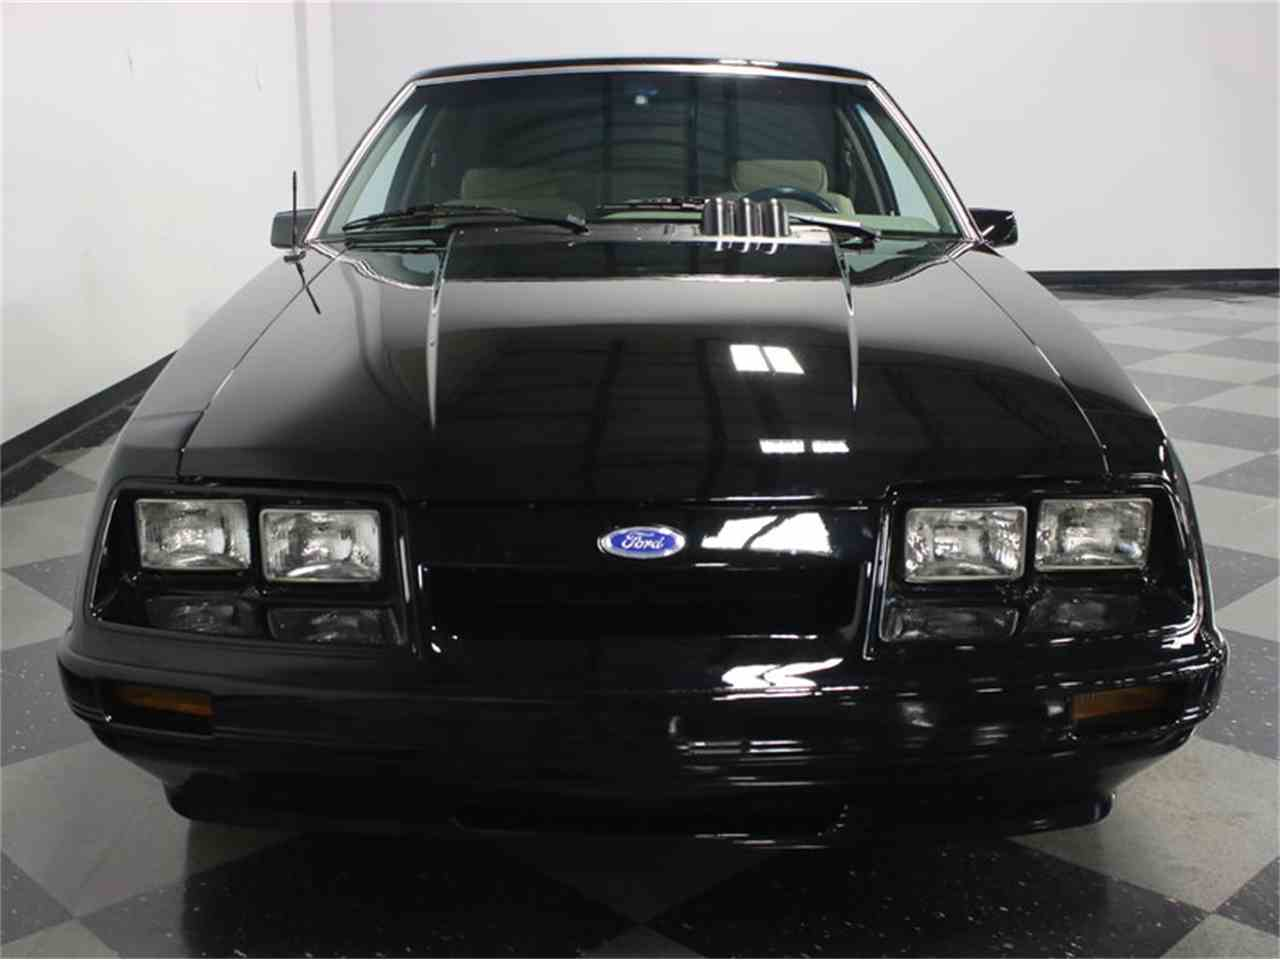 Large Picture of 1986 Ford Mustang SSP Interceptor Offered by Streetside Classics - Dallas / Fort Worth - JZNT